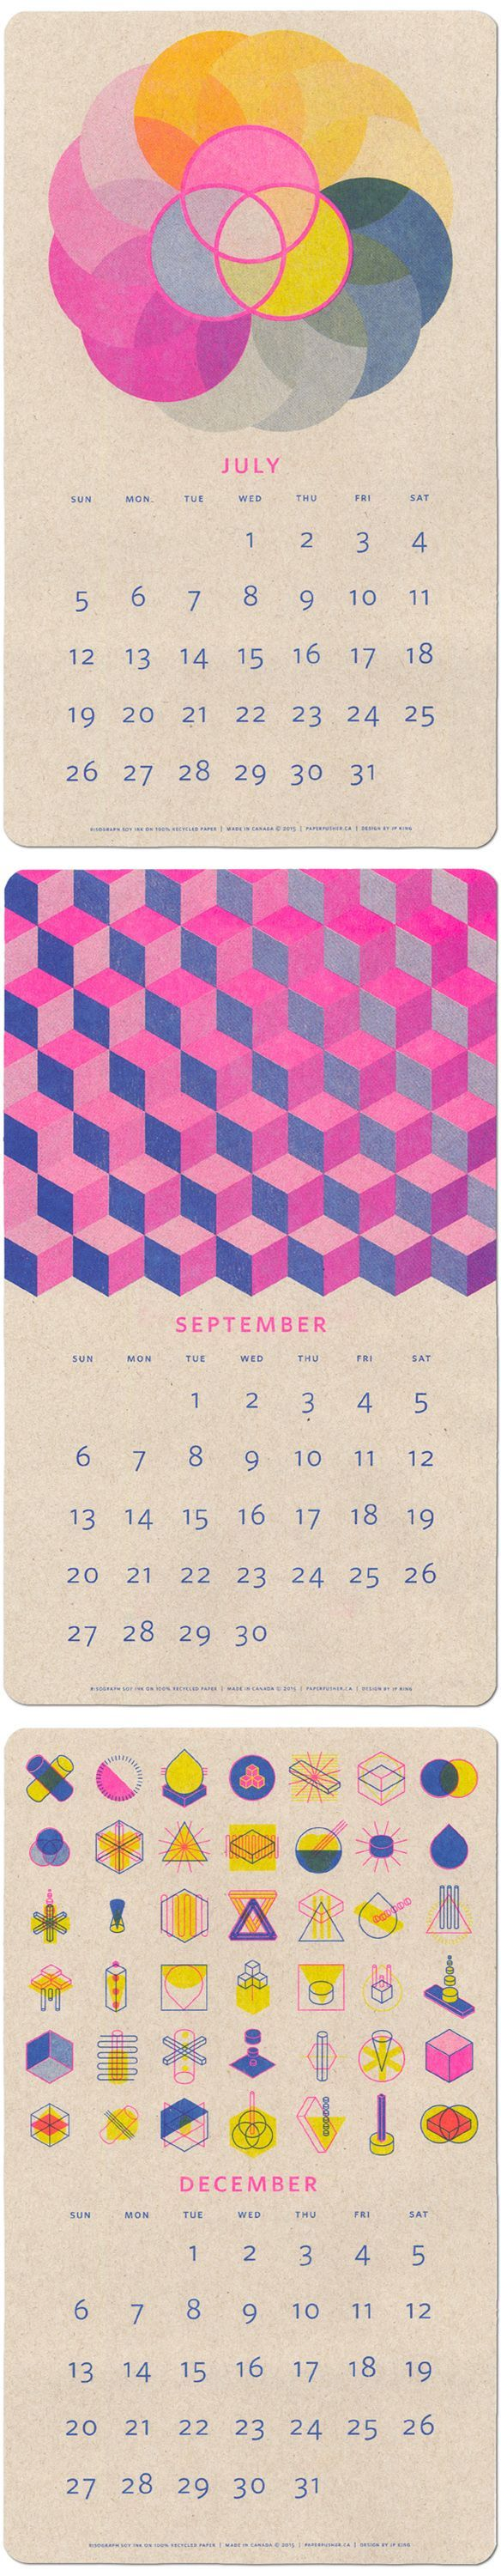 2015 risograph print calendar by paper pusher (aka jp king)